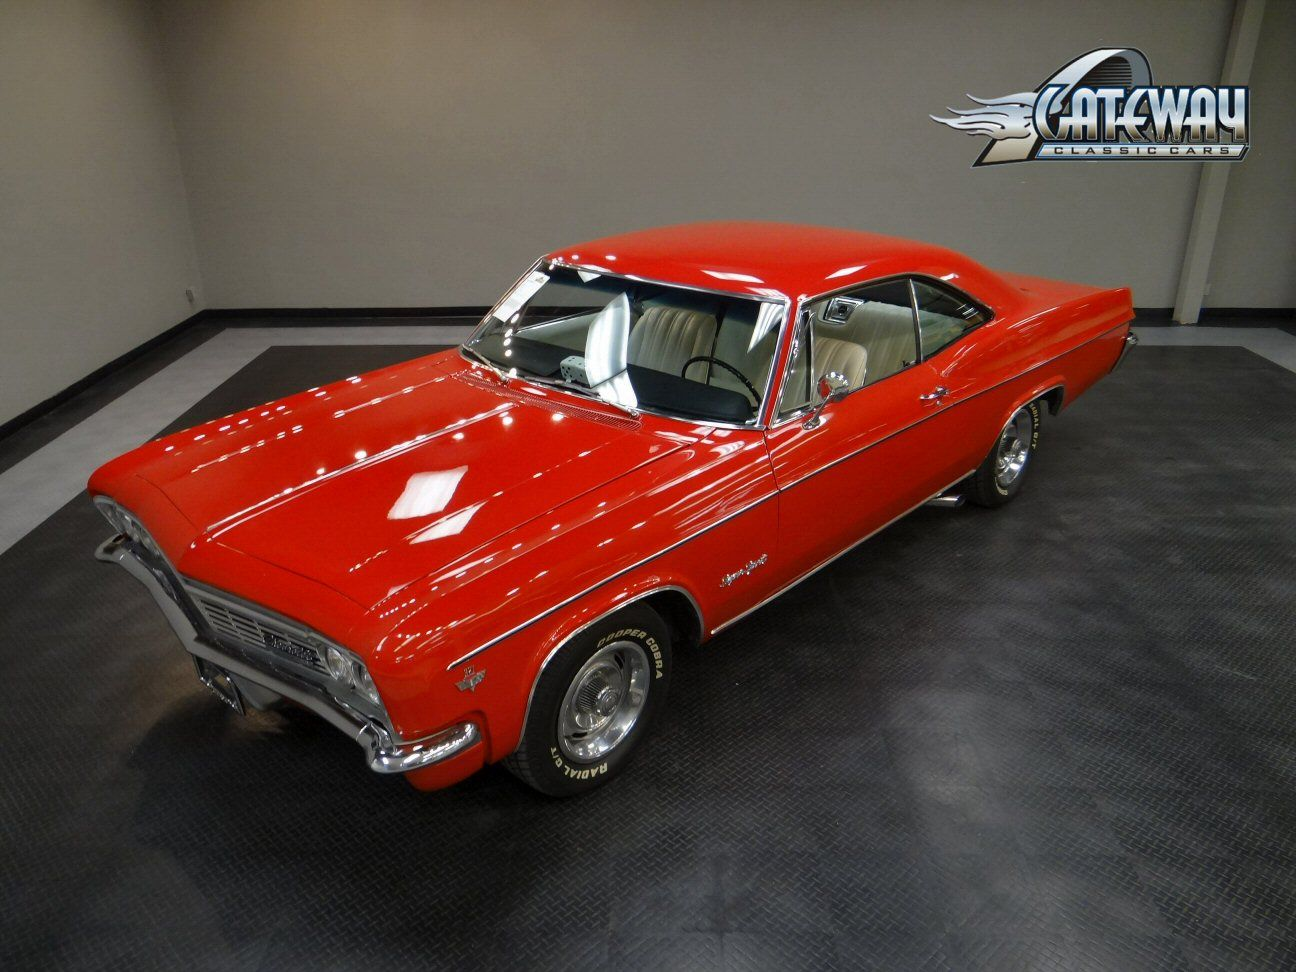 1966 Impala SS for Sale | 1966 Chevrolet Impala SS for Sale ...